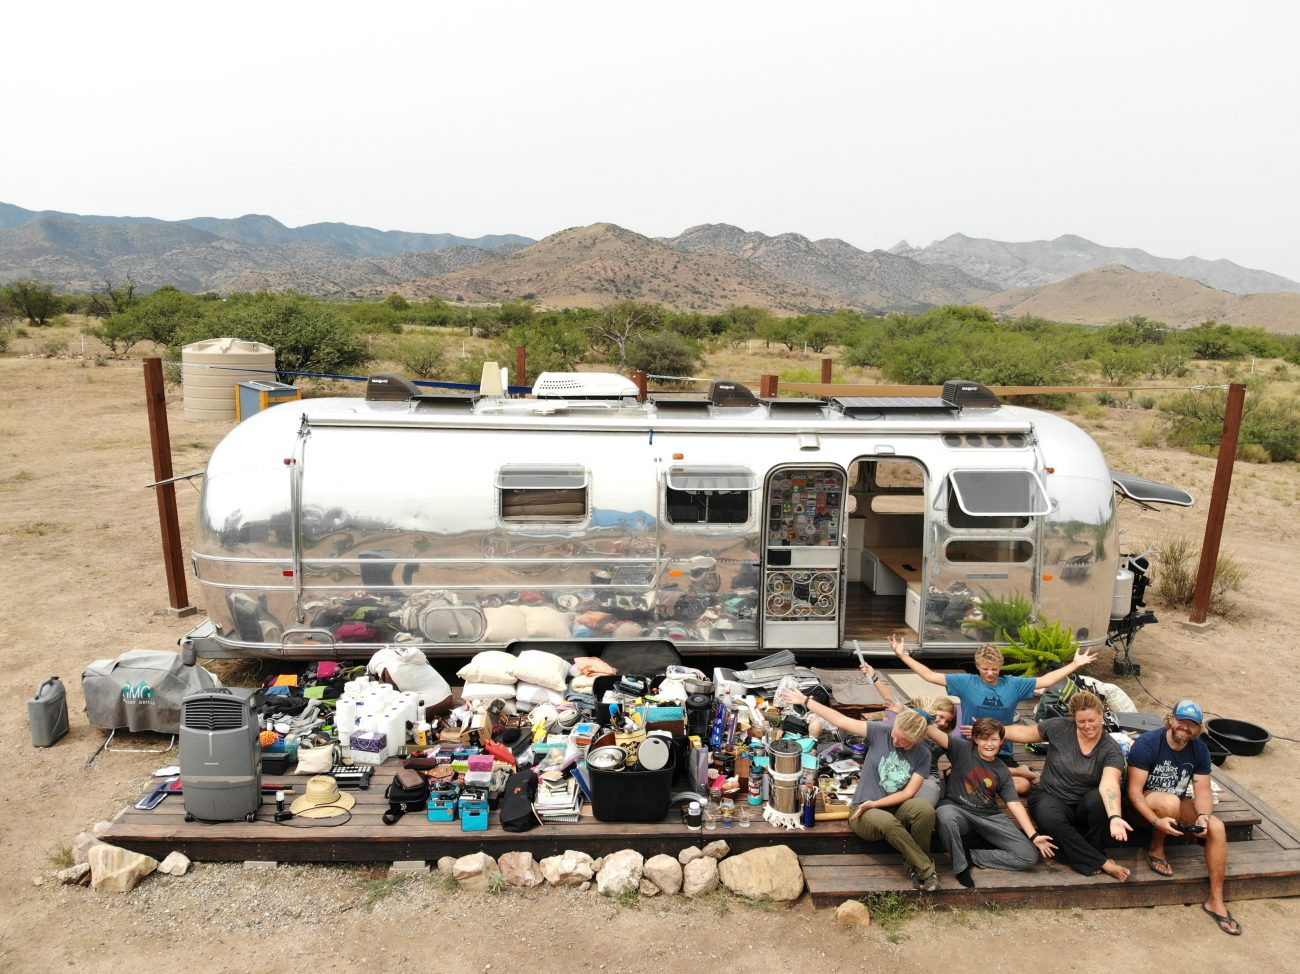 We pulled all our stuff out of our renovated vintage Airstream and deep cleaned everything!